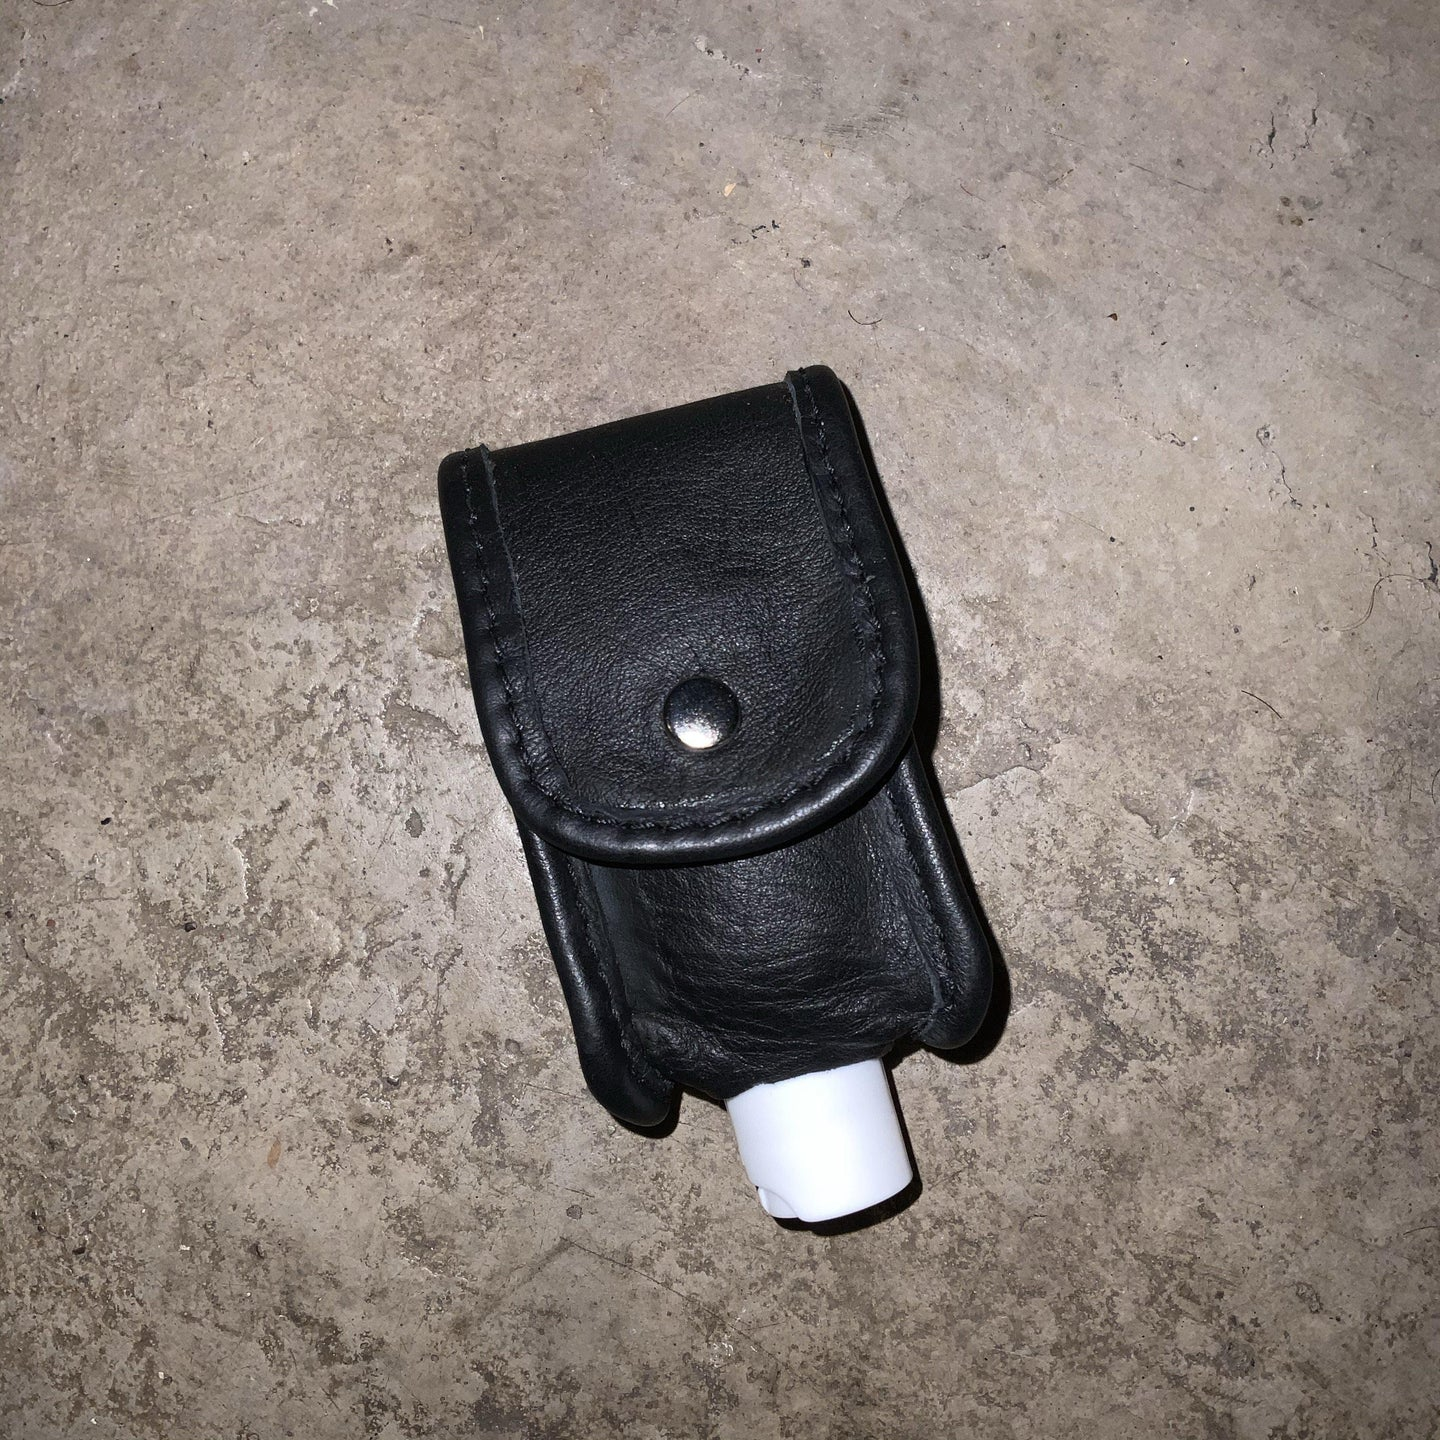 Hand Sanitizer Case with Belt Attachment in Black